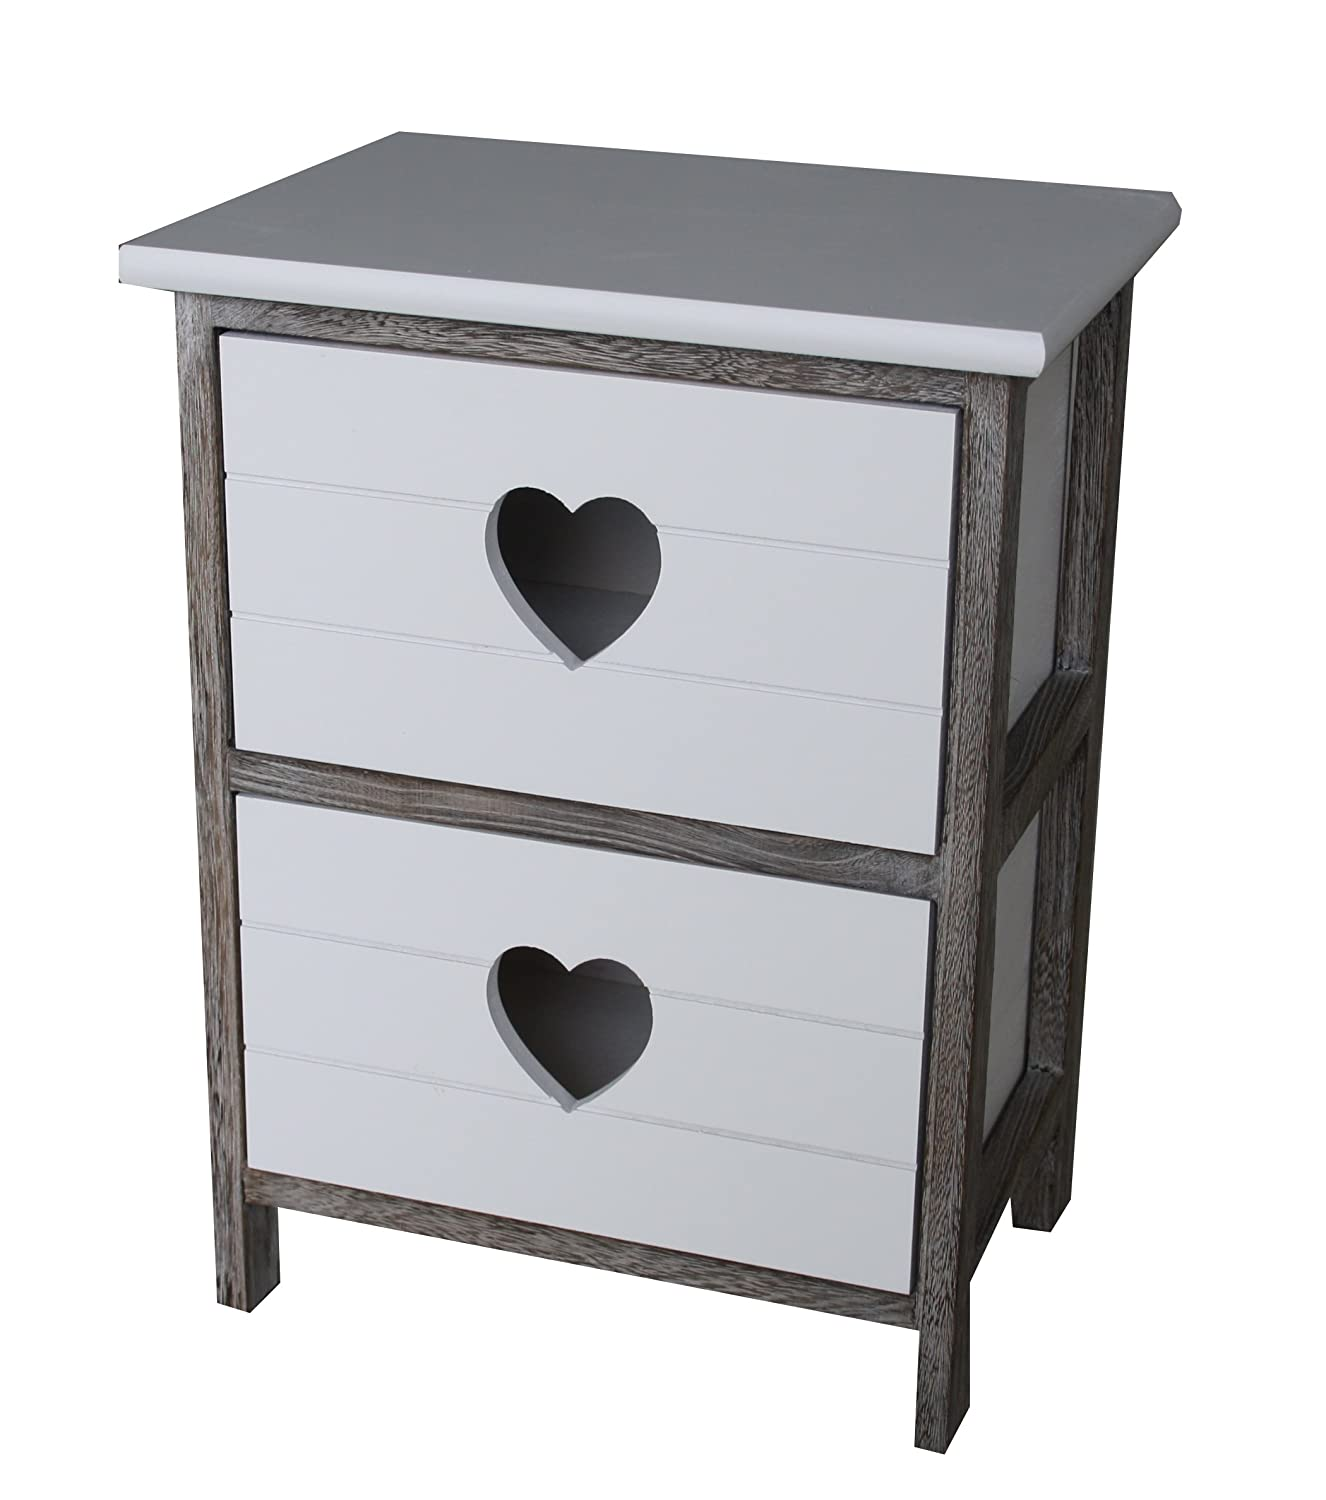 Shabby Chic Modern Wooden White Bedside Table Drawer Cabinet with